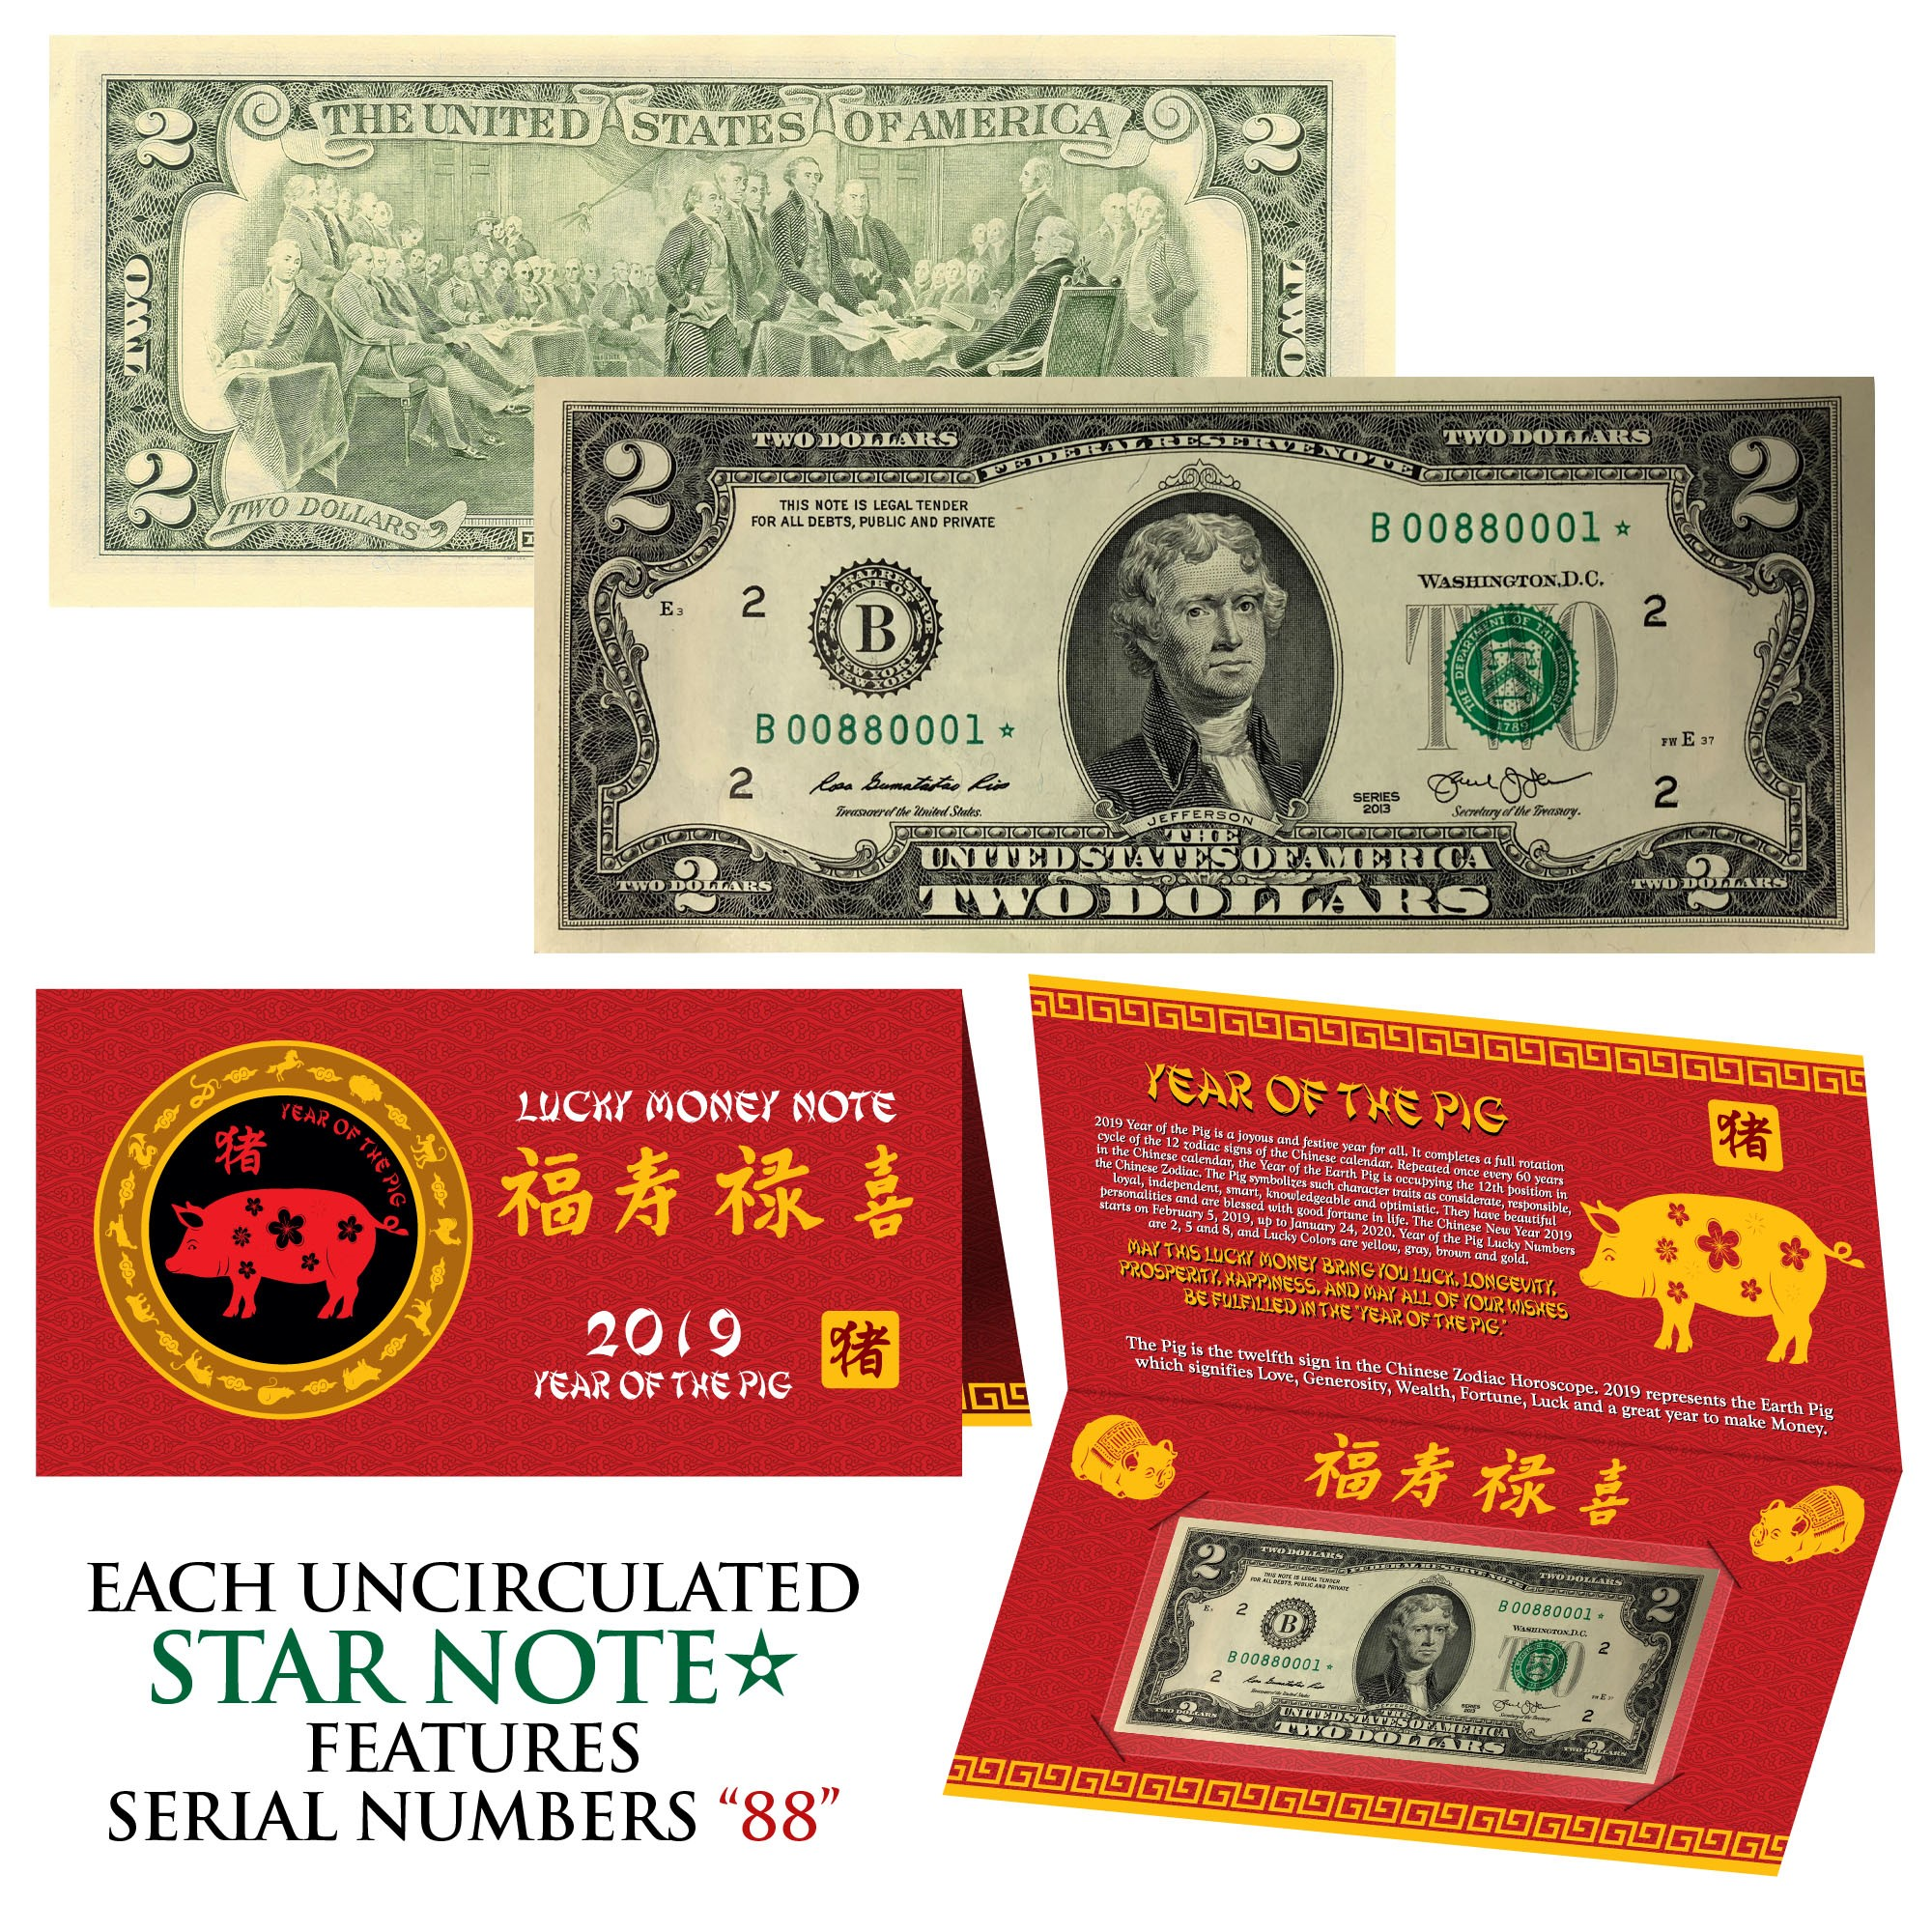 Details about 2019 STAR NOTE Lunar Year of the PIG Lucky Money $2 US Bill  w/ Red Folder S/N 88